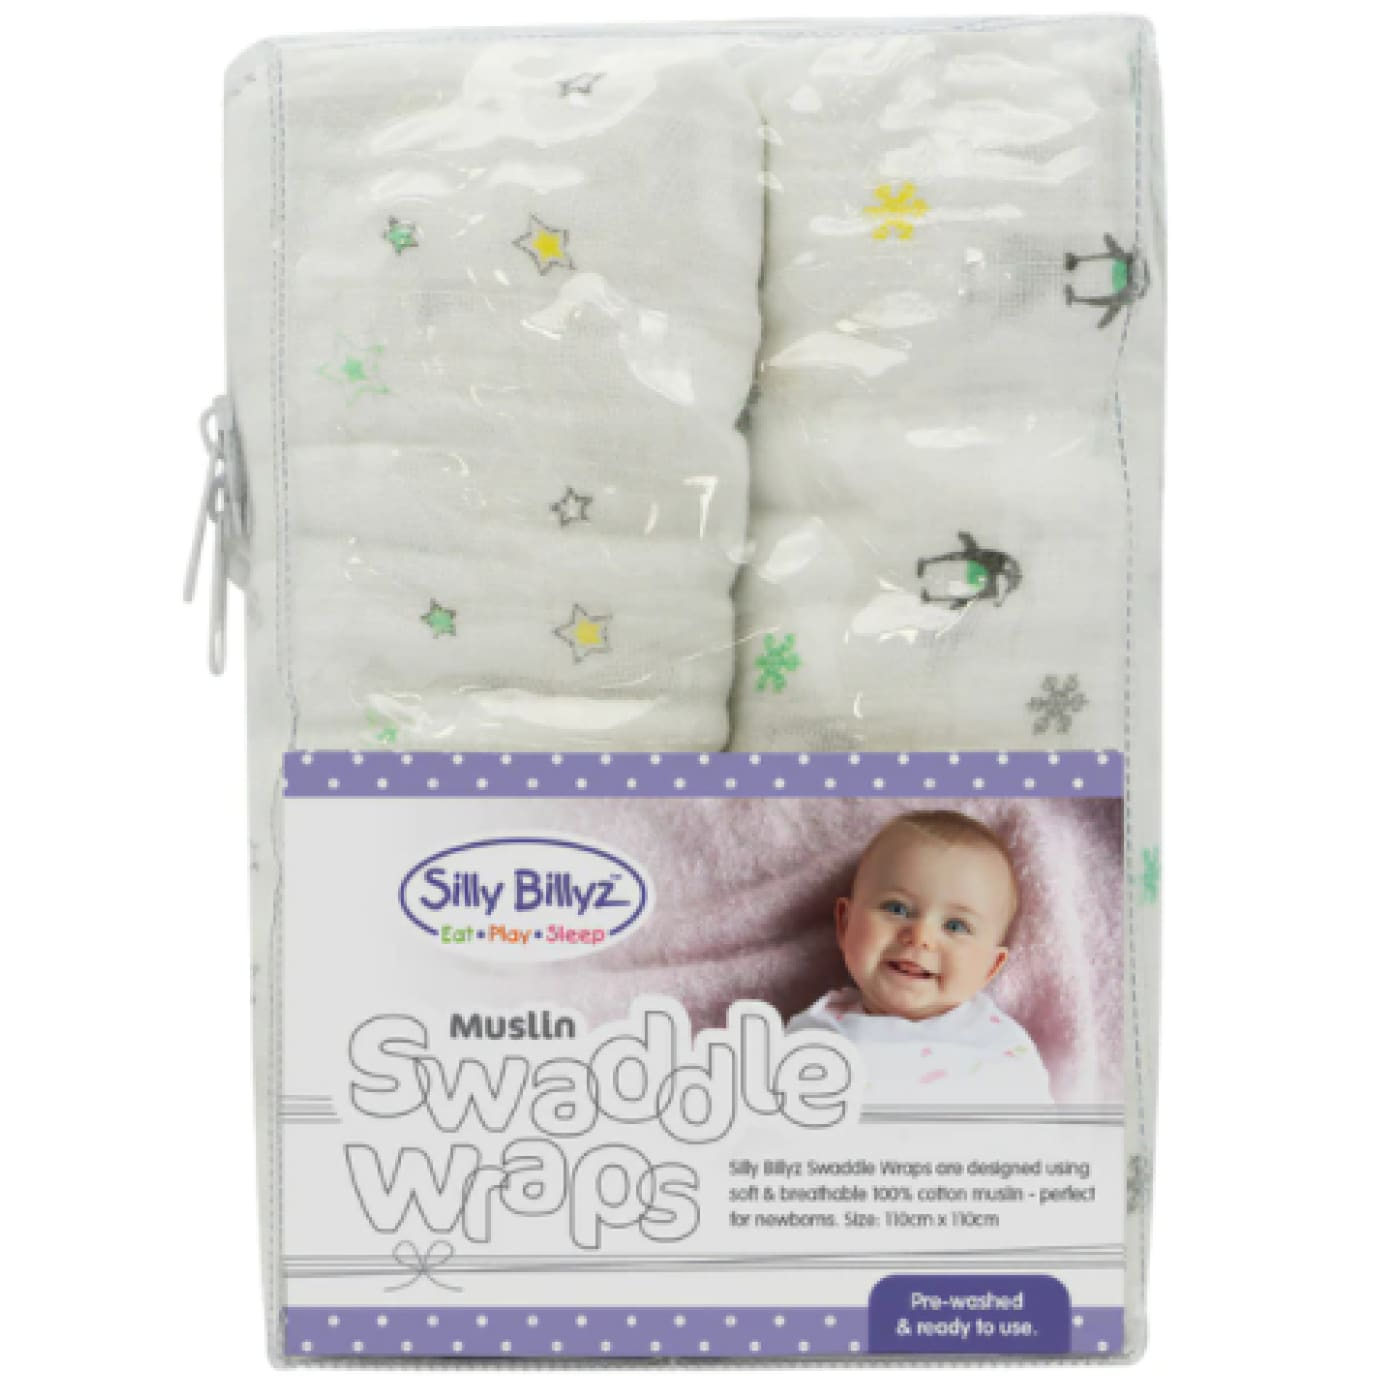 Silly Billyz Muslin Swaddle Wrap 2pack - Neutral - NURSERY & BEDTIME - SWADDLES/WRAPS